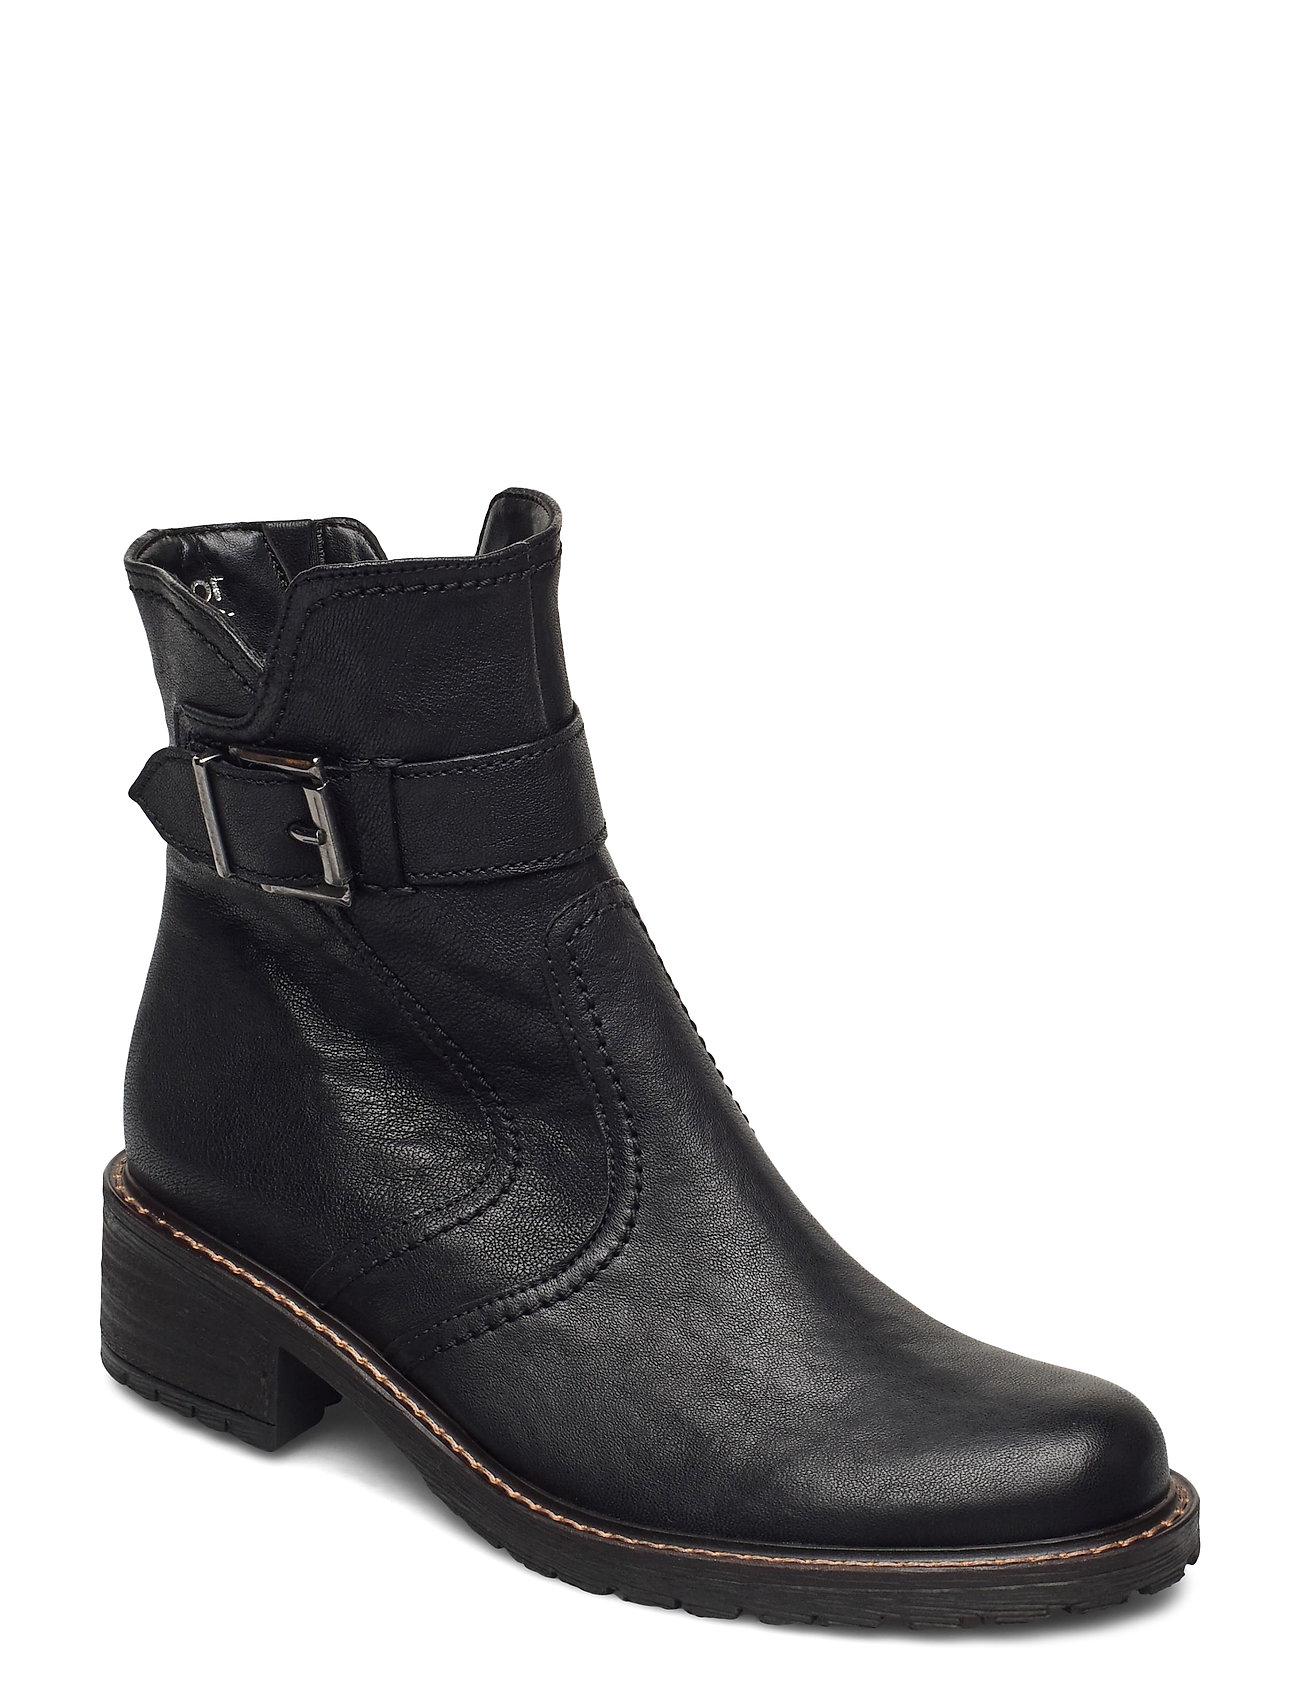 Image of Ankle Boot Shoes Boots Ankle Boots Ankle Boot - Heel Sort Gabor (3462700121)